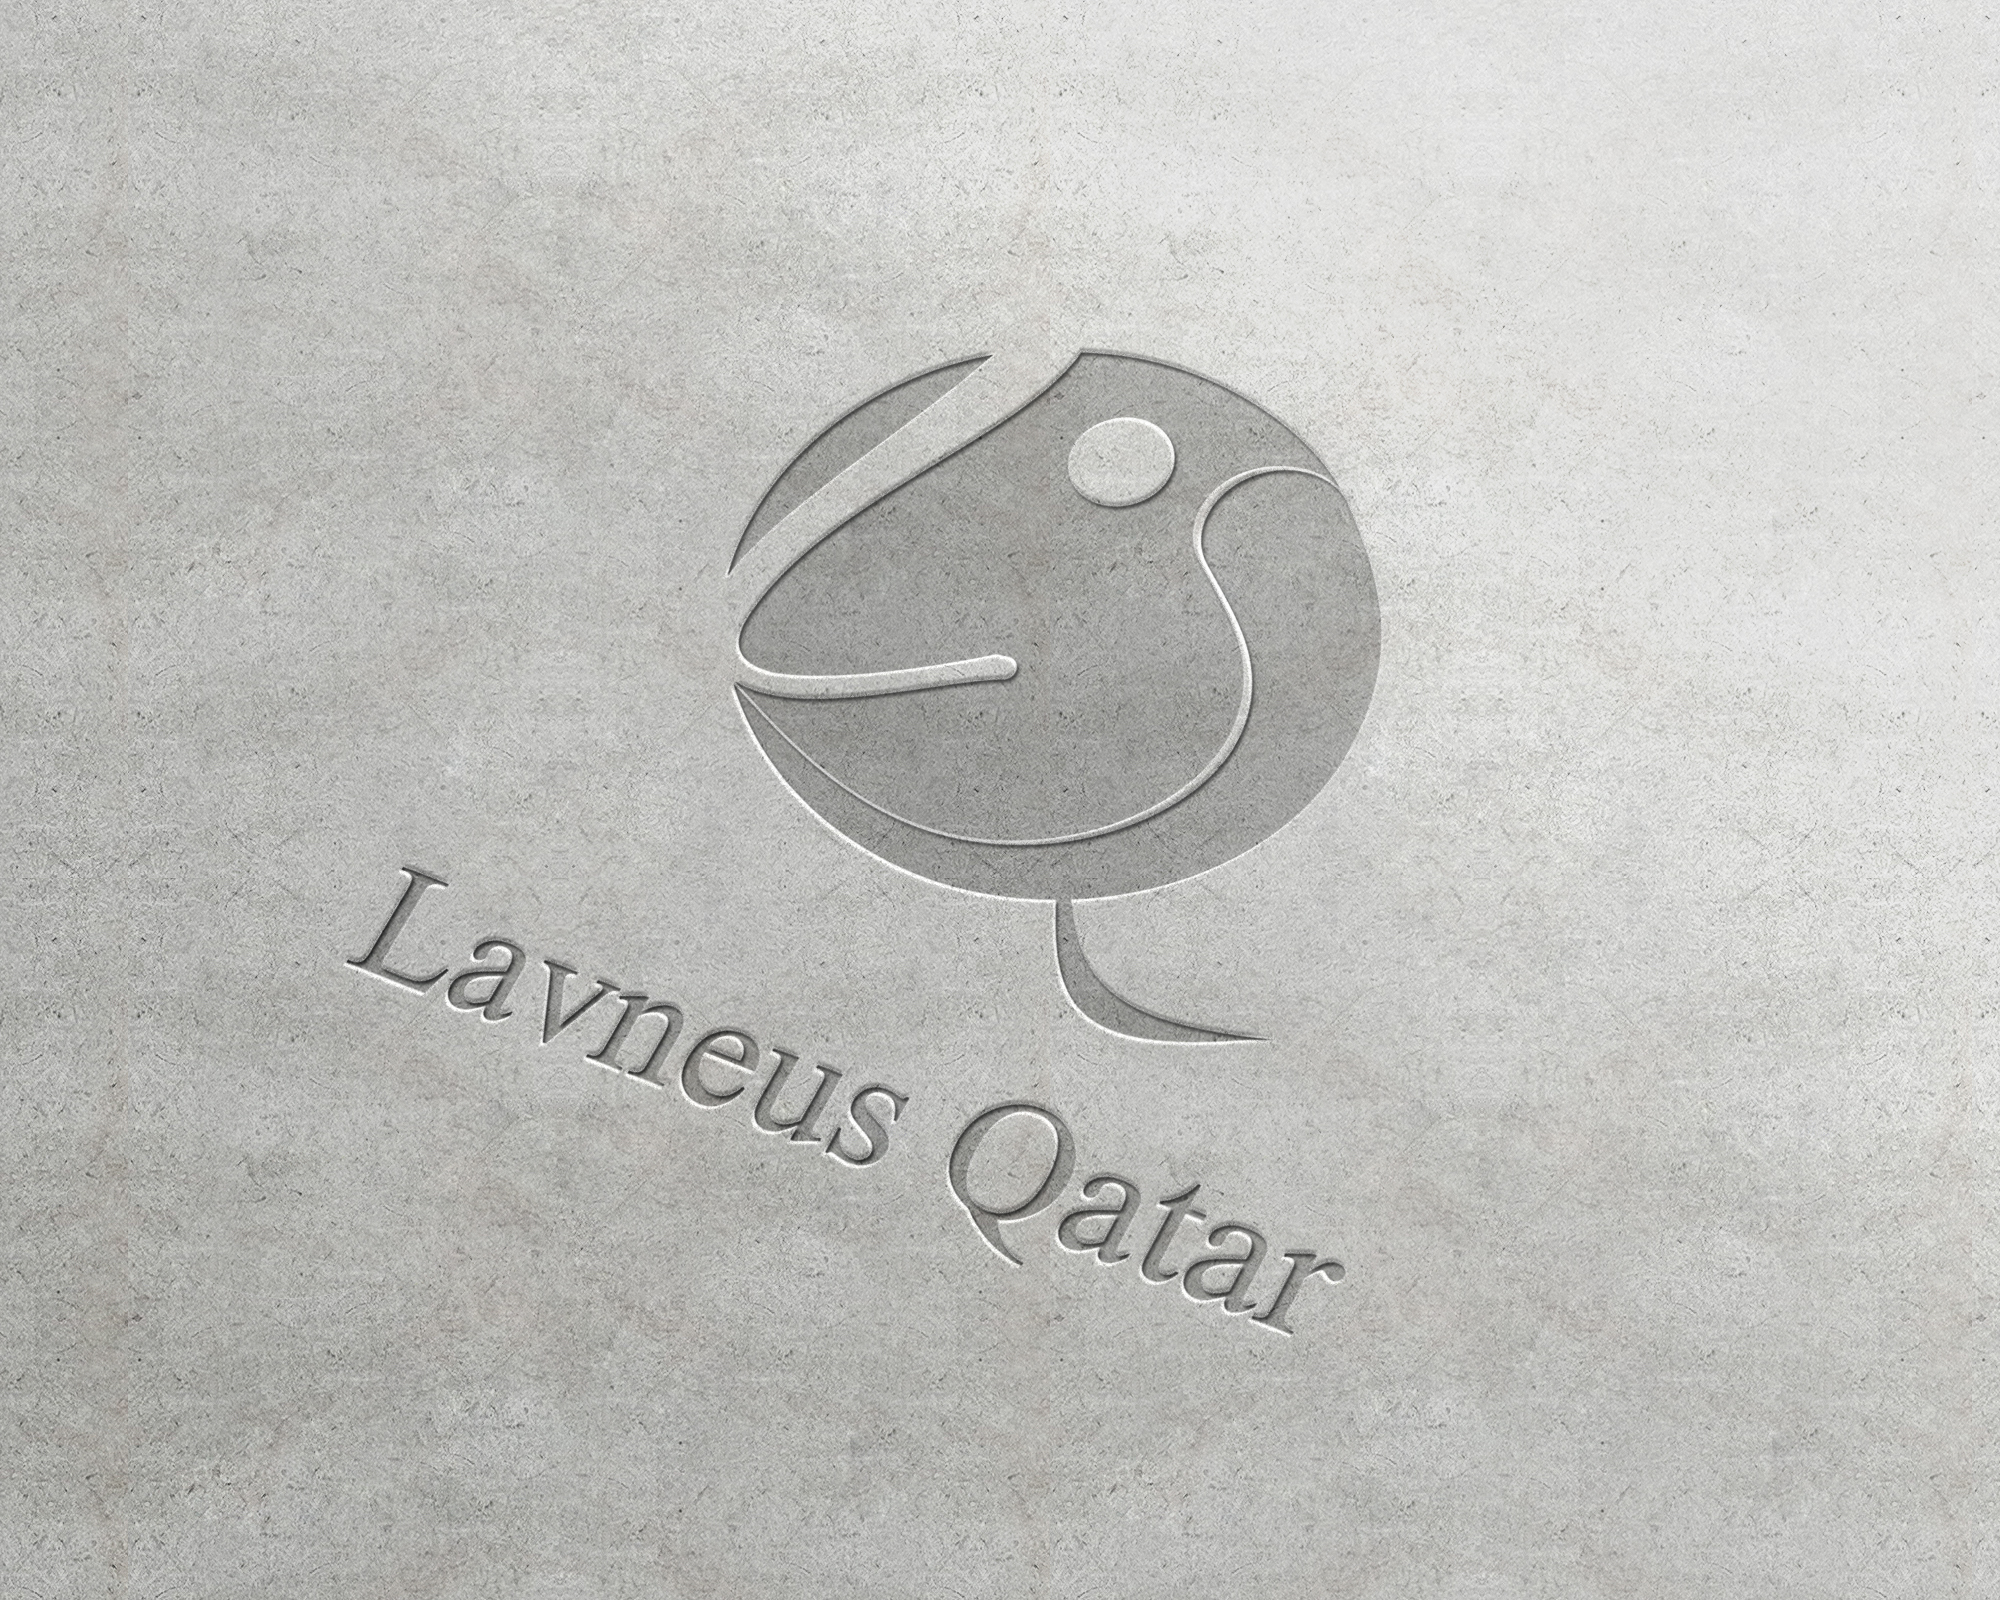 Logo Design by Shakir Alzadjali - Entry No. 60 in the Logo Design Contest Imaginative Logo Design for lavneus qatar.